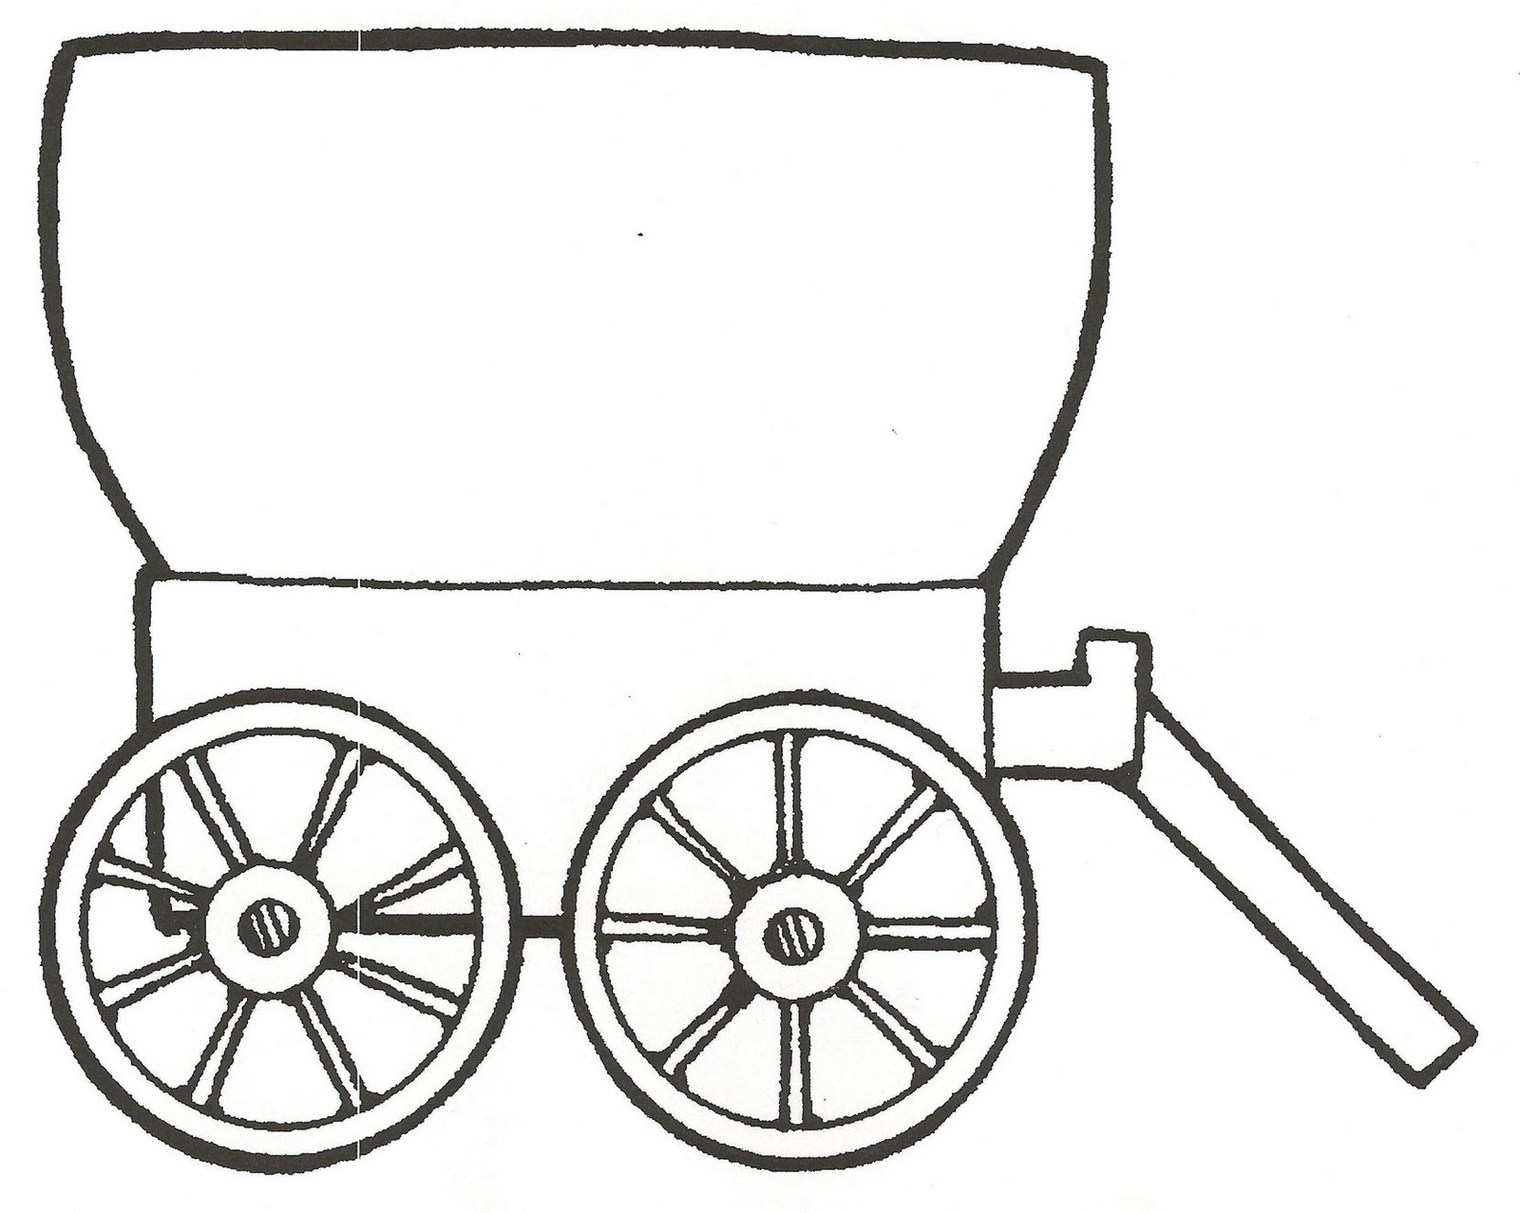 Covered Wagon Clipart; Wagon Clip Art Clipart - Free to use Clip Art Resource ...